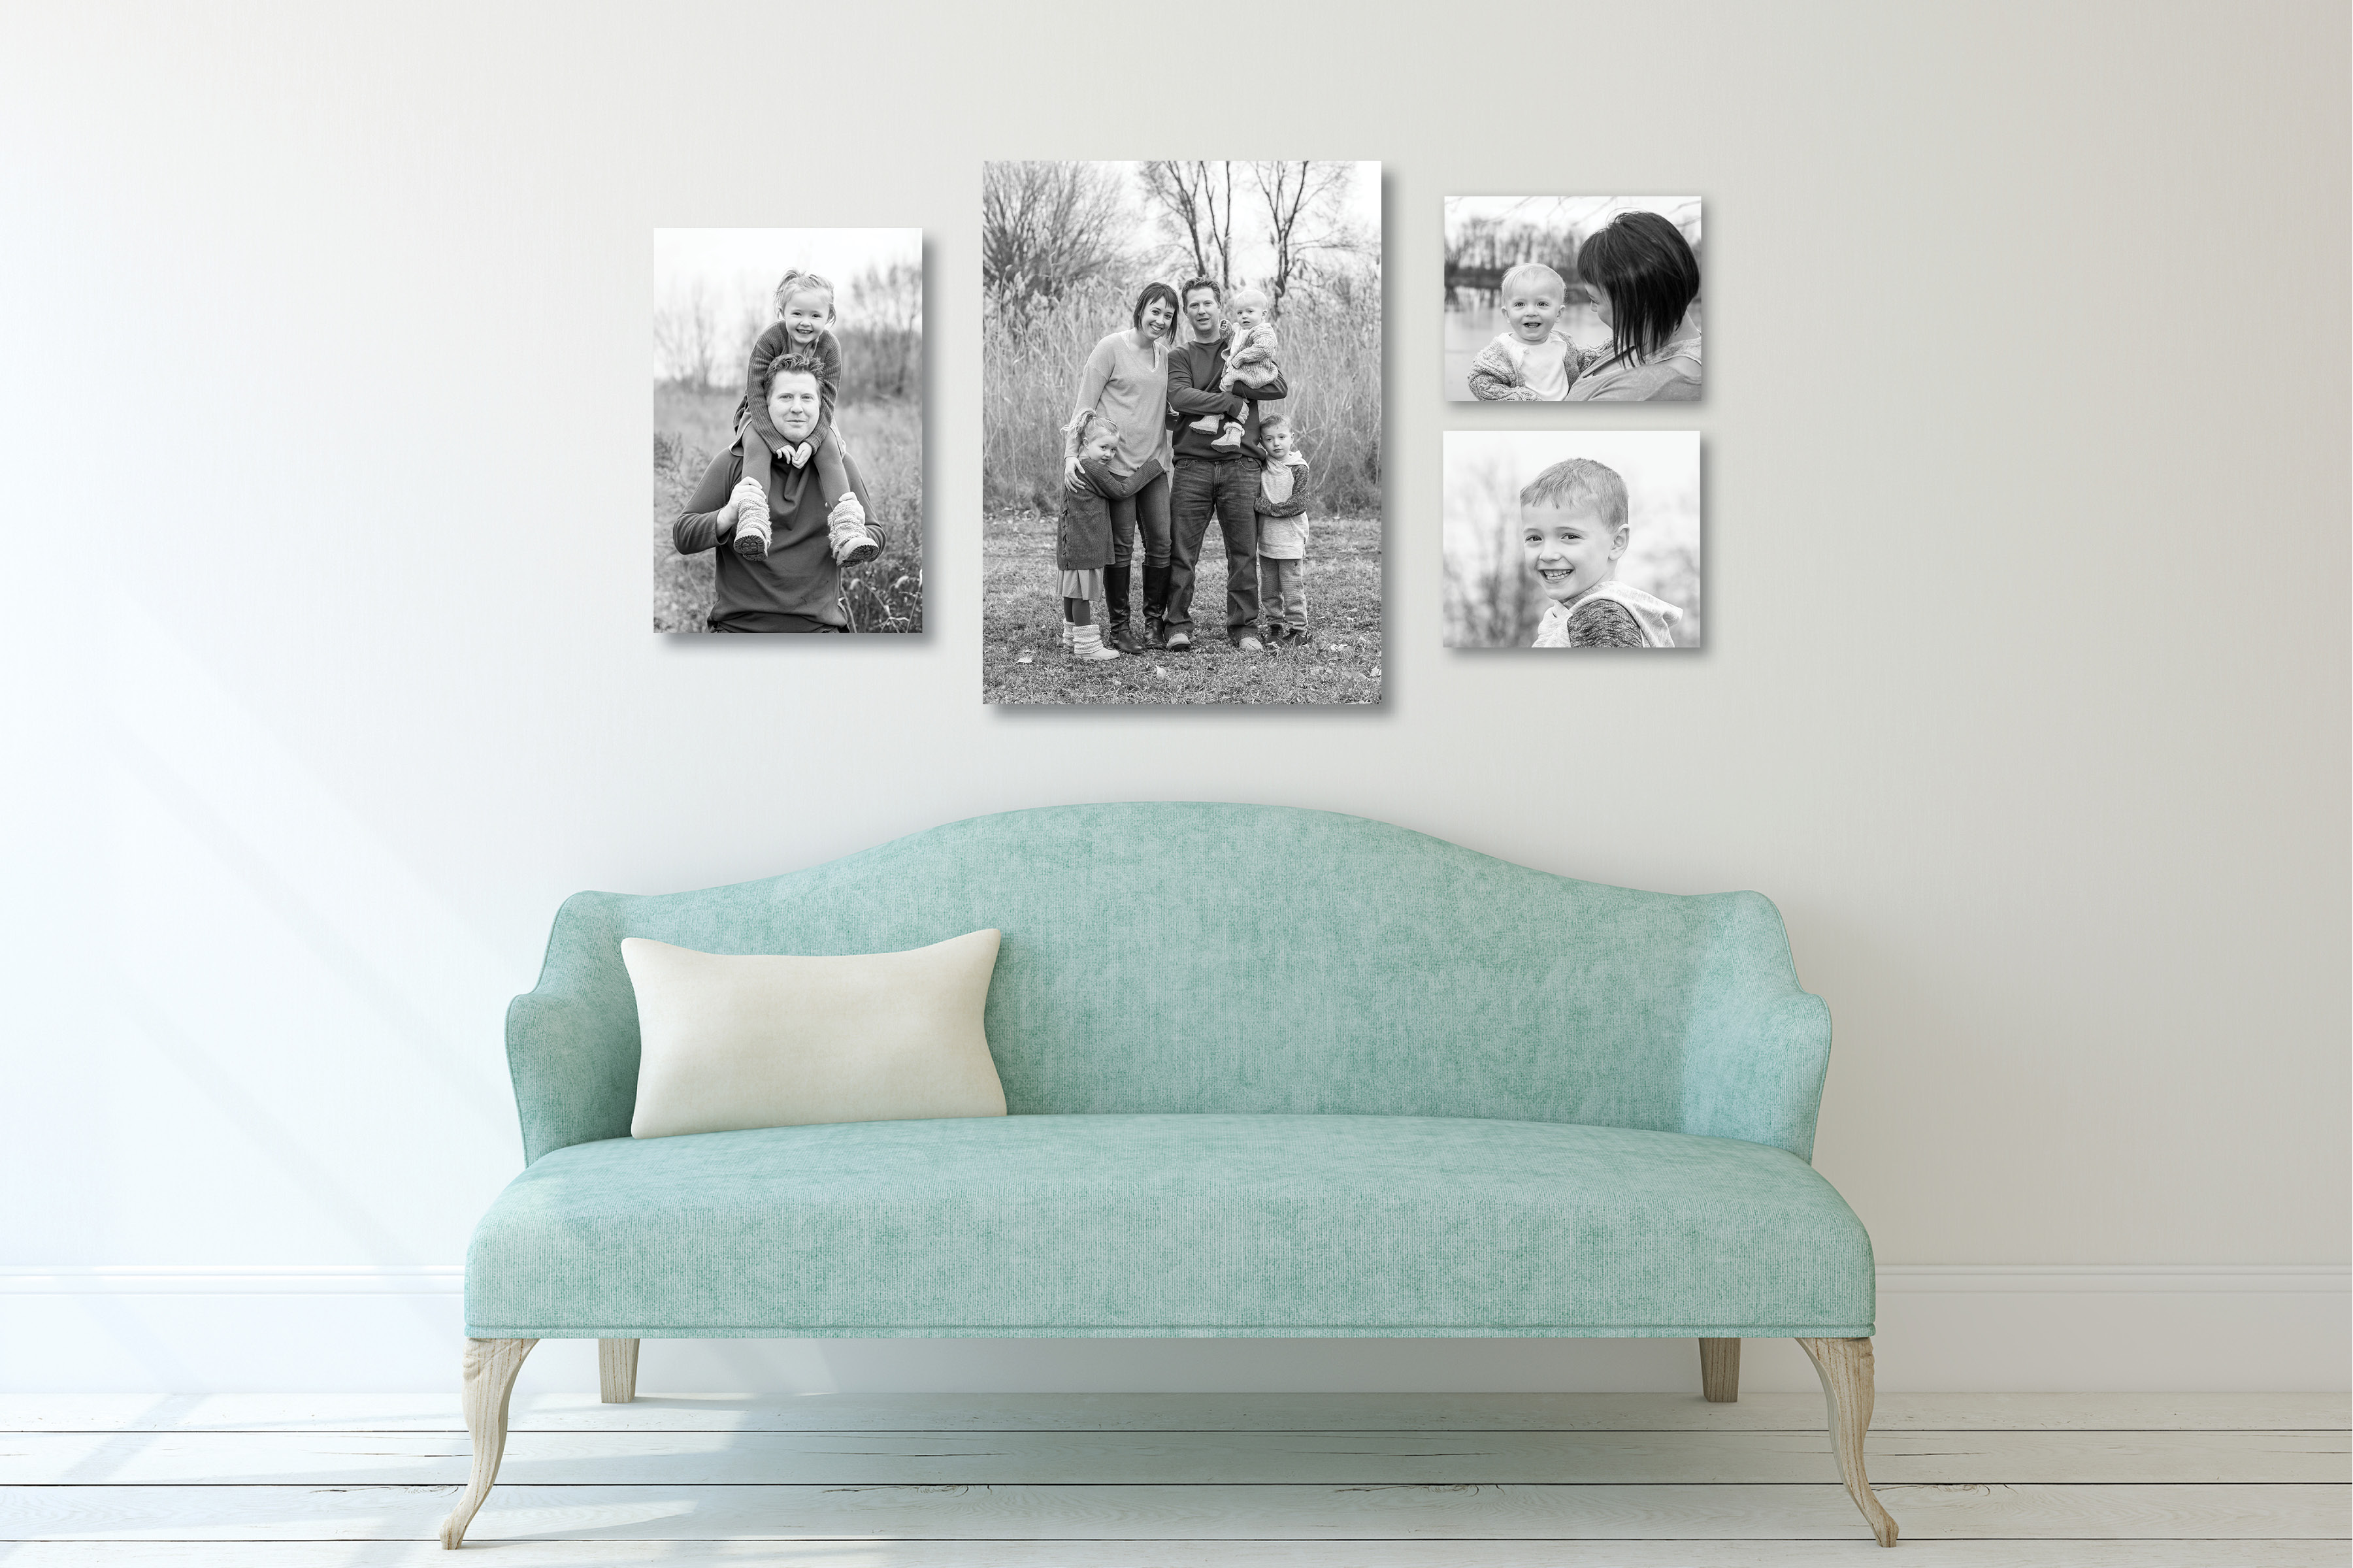 Collage of images above sofa.